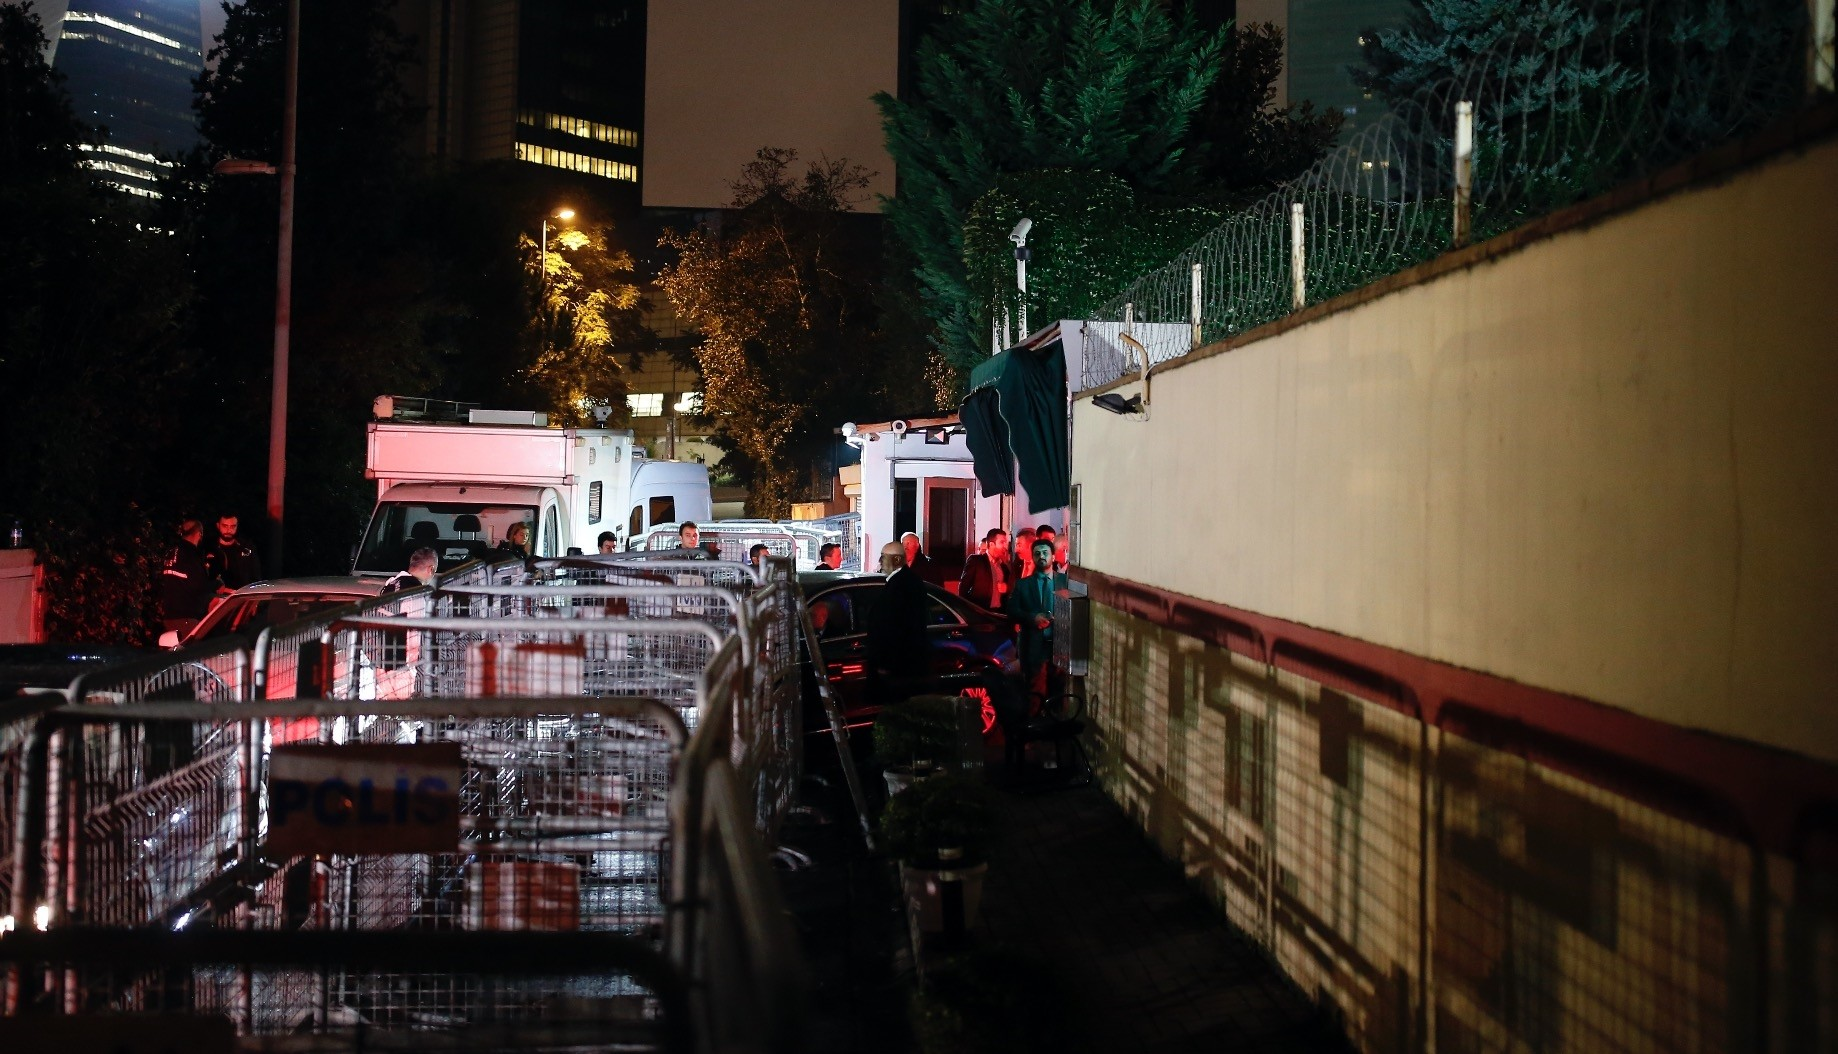 Turkish forensic investigators arrive at the Saudi Consulate to conduct a new search over the disappearance of Saudi journalist Jamal Khashoggi, Istanbul, Oct. 18.